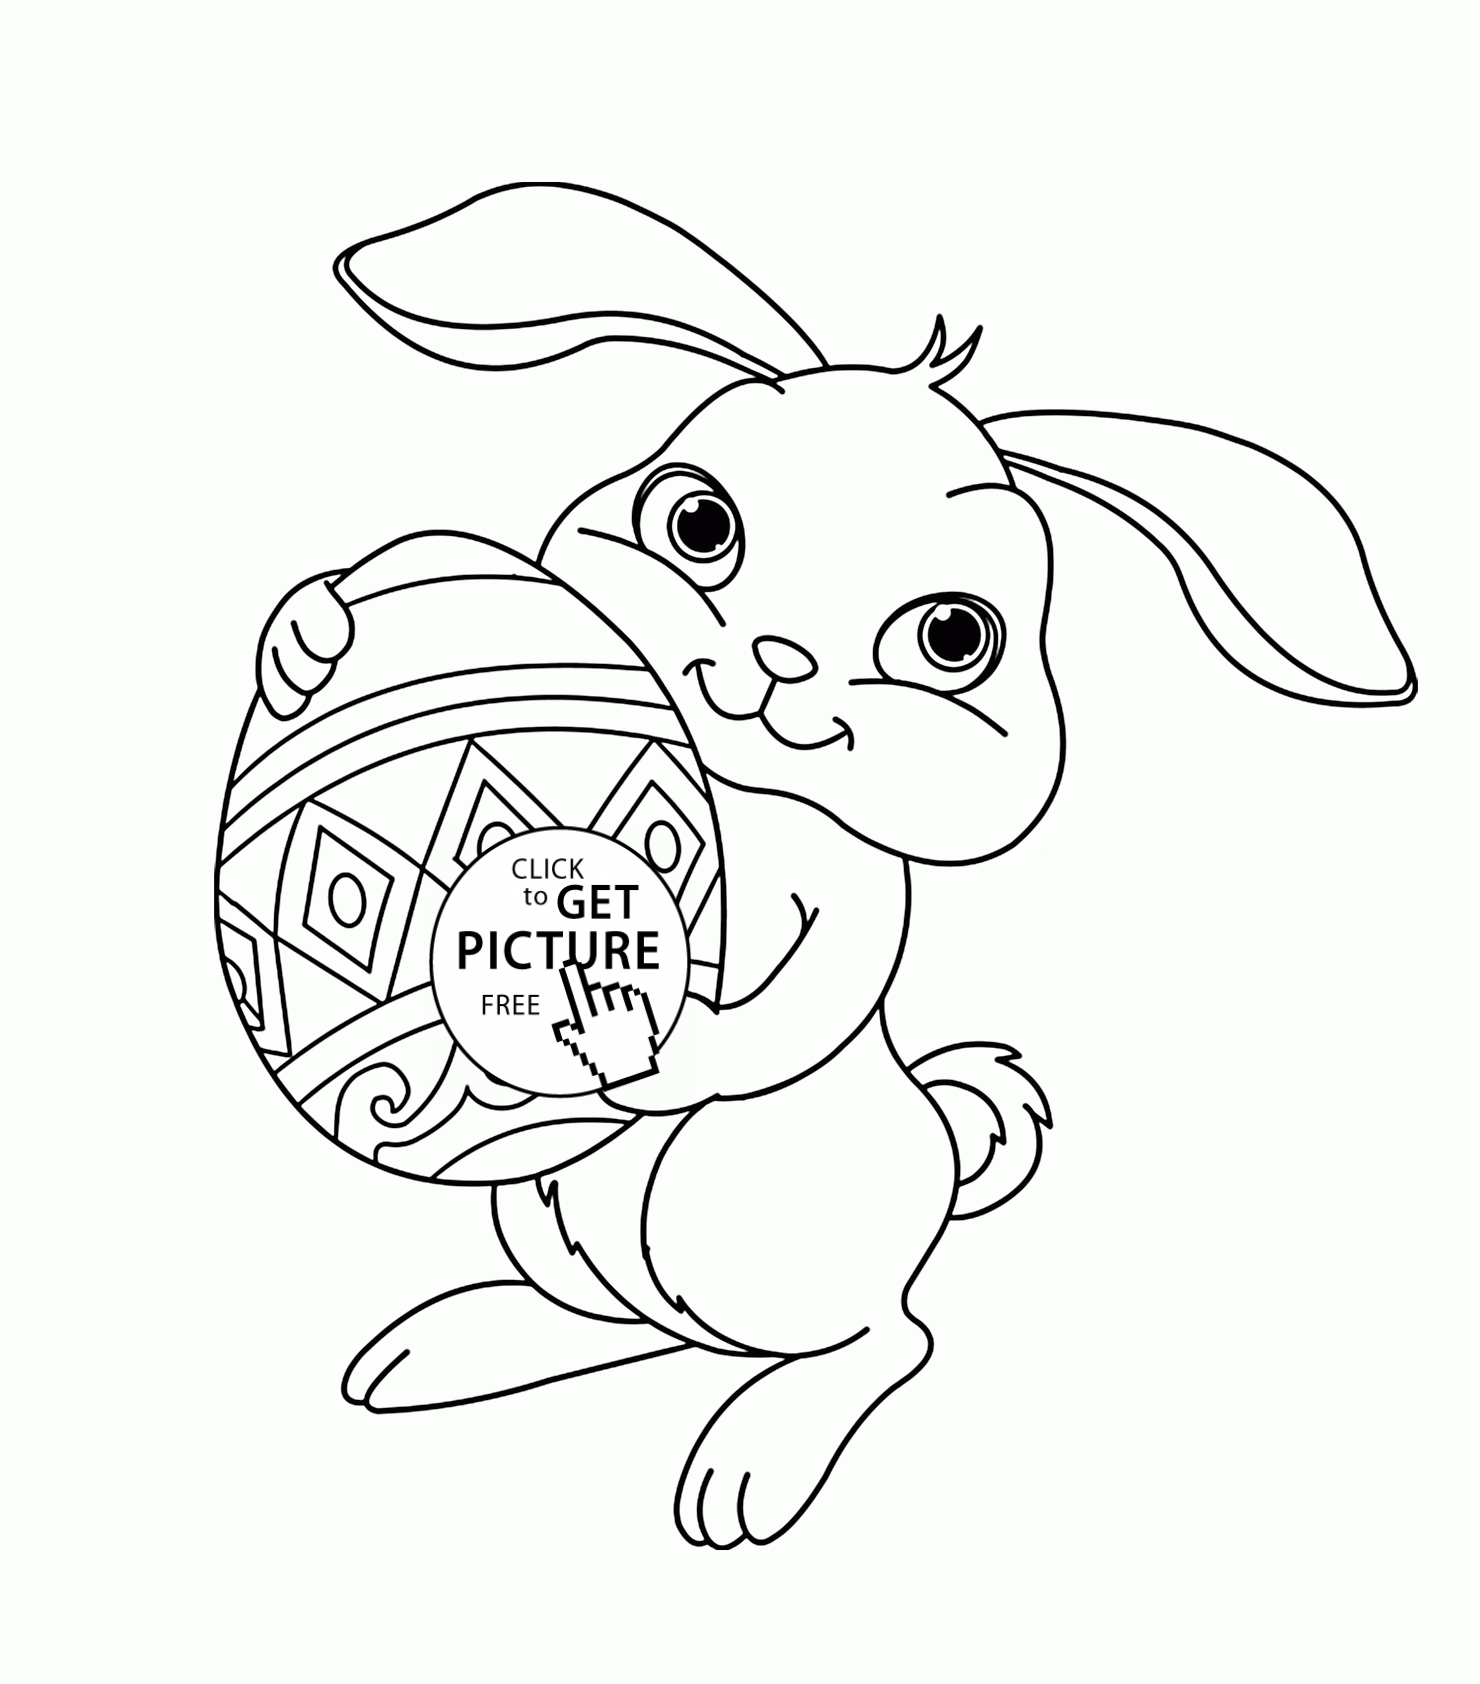 Cute Bunny Coloring Pages  Download 12k - Free For kids